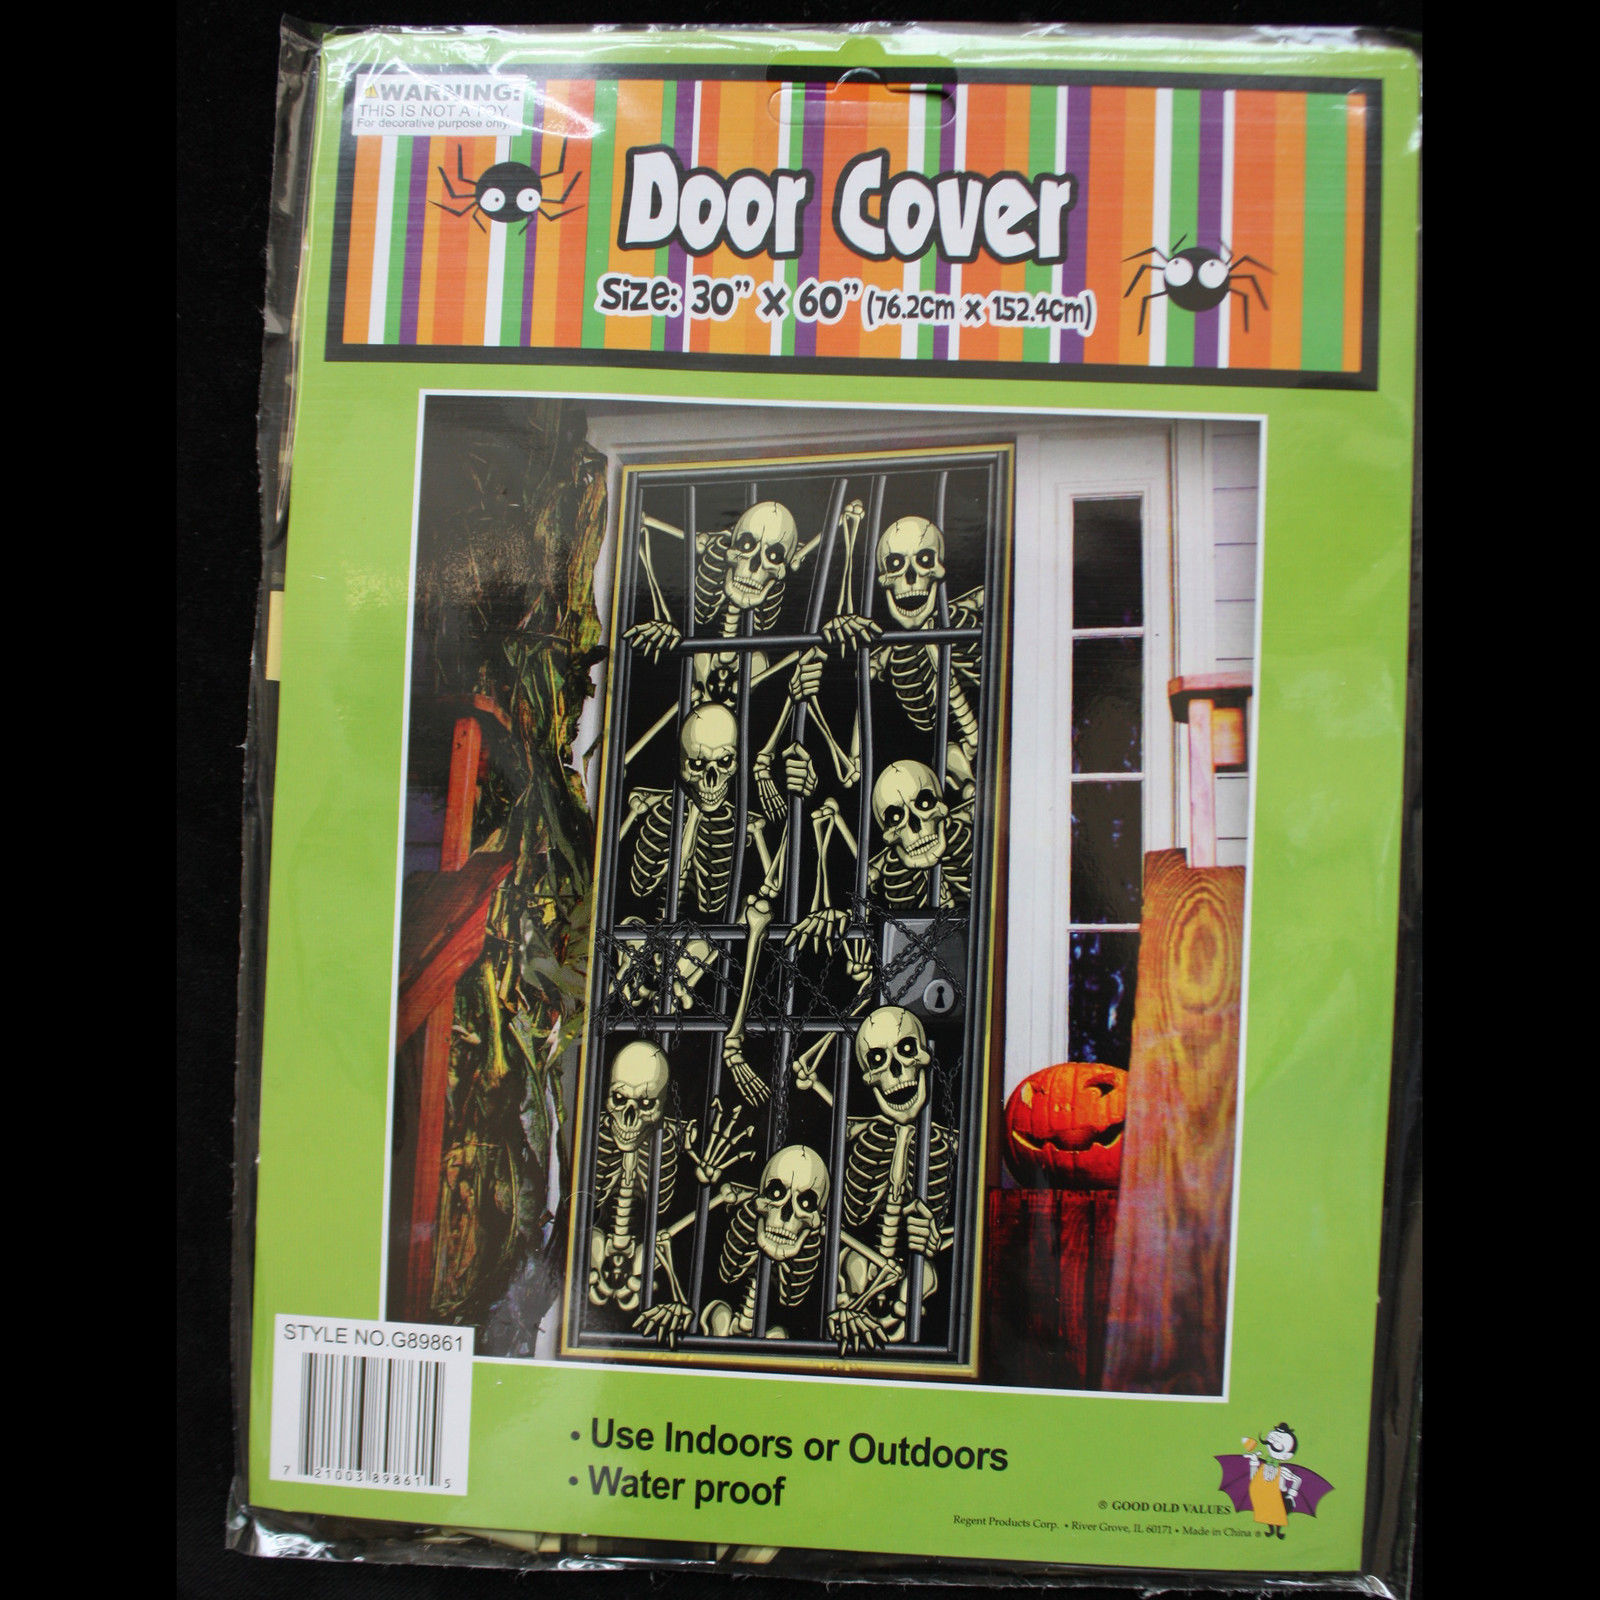 Gothic-SKELETON PRISONERS DOOR COVER MURAL-Halloween Party Decoration Prop-30x60